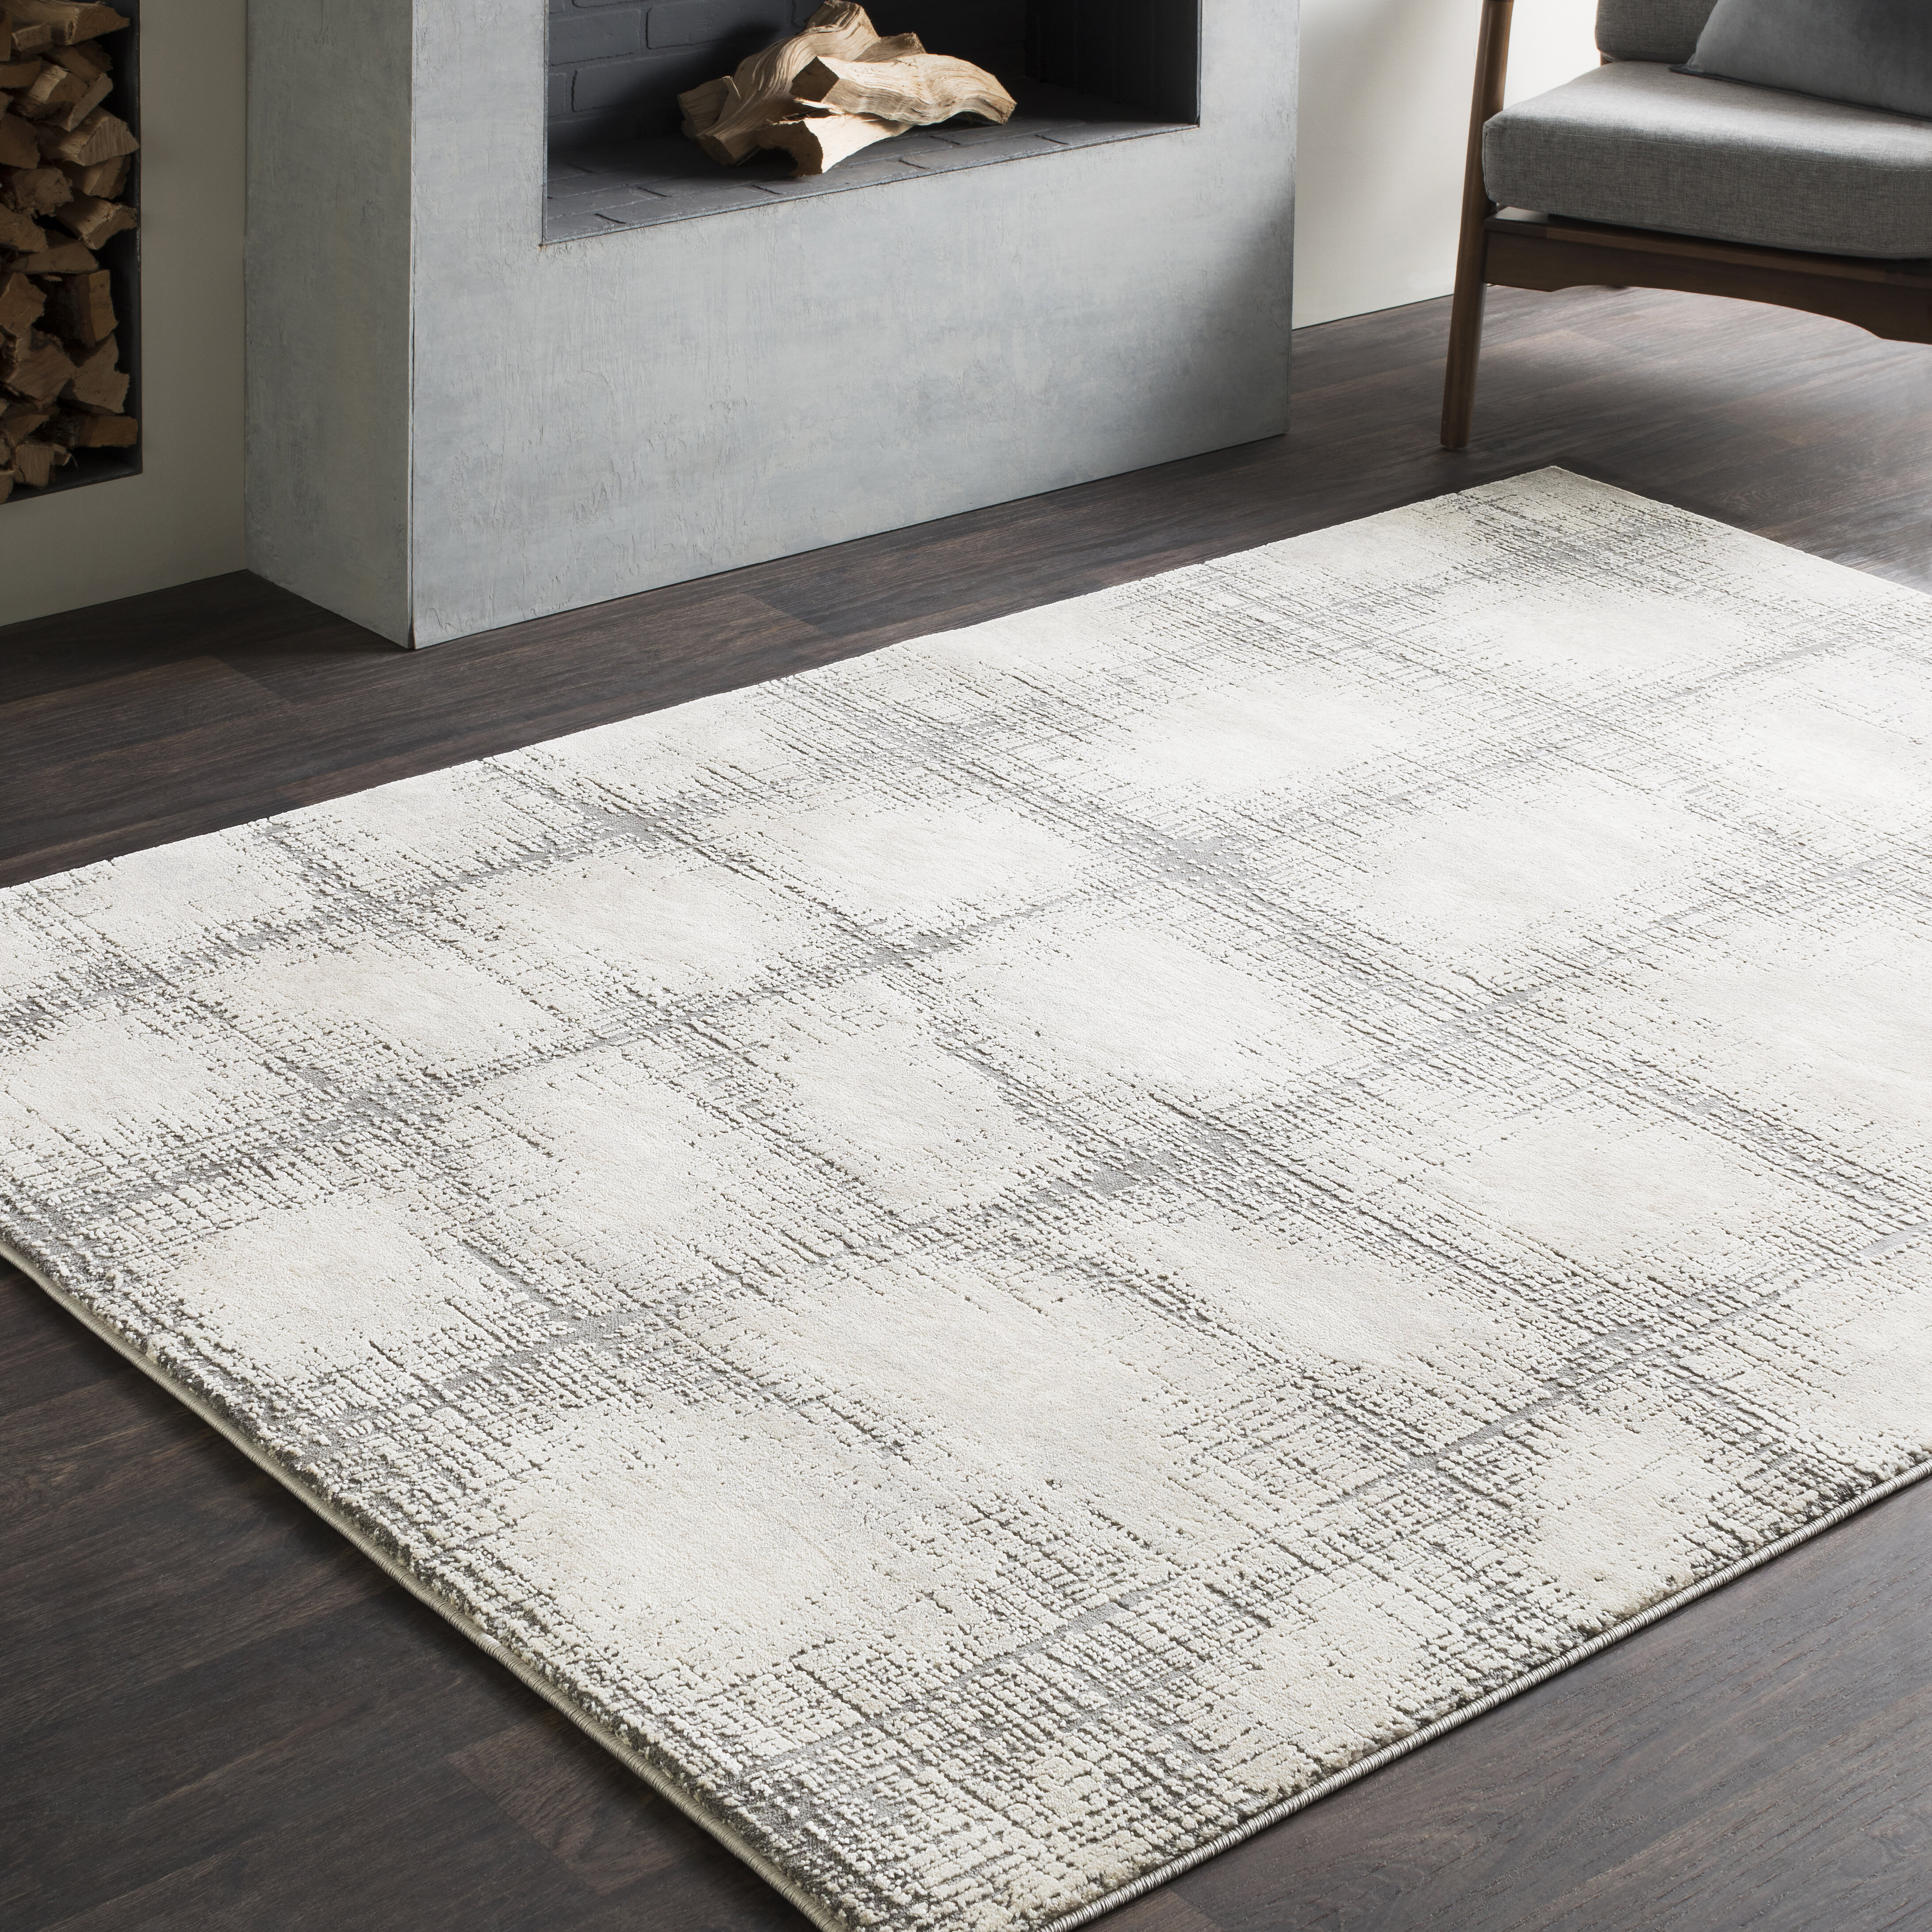 shag large plush lowes white rugs living tan and area ivory ideas grey room class target walmart cream extra rug top silver fluffy big carpet wool shaggy furry sisal pile costco